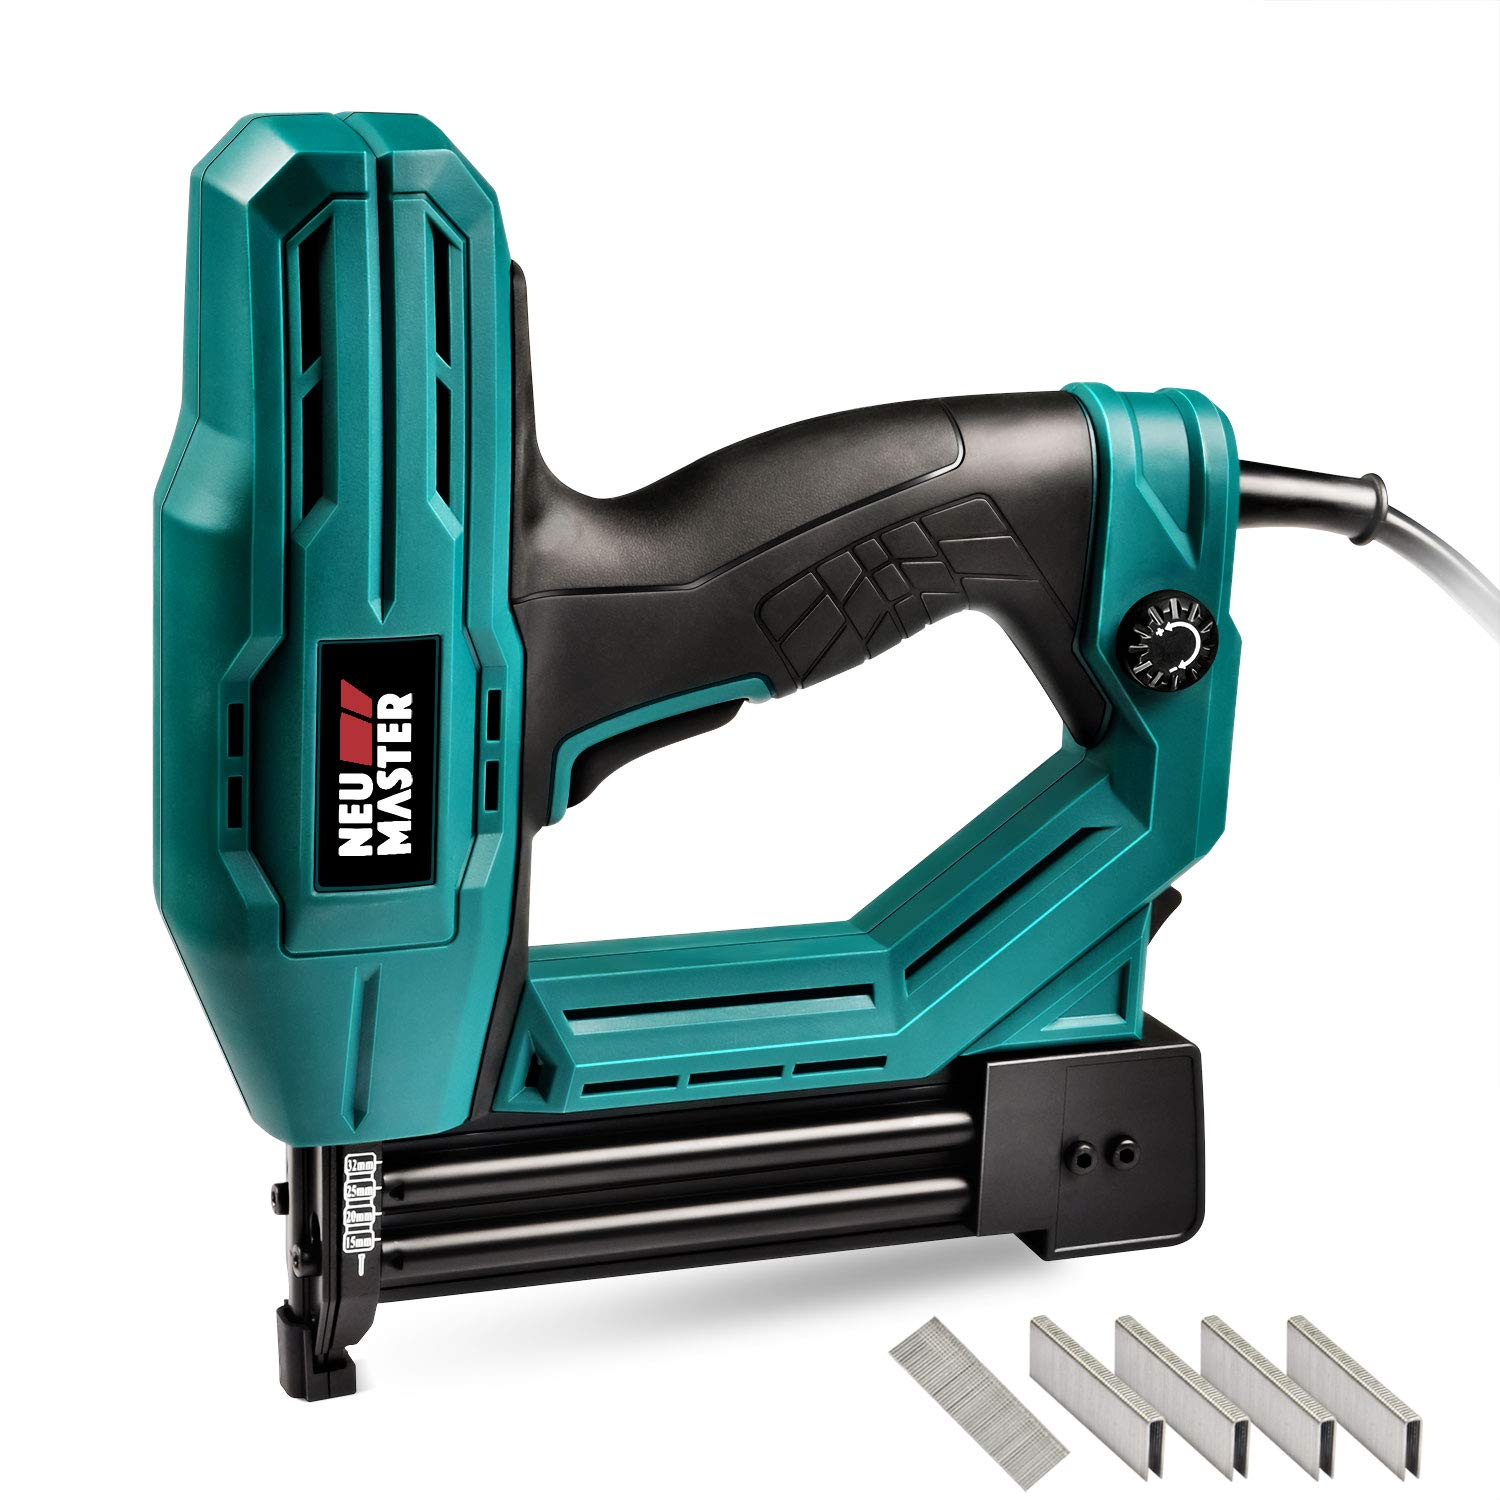 Electric Staple Brad Nail Gun NEU MASTER NTC0040 Heavy duty Tool for Upholstery Home Improvement and Woodworking Including Narrow Crown 1 4'' Crown staples 400pcs and brad nails 100pcs